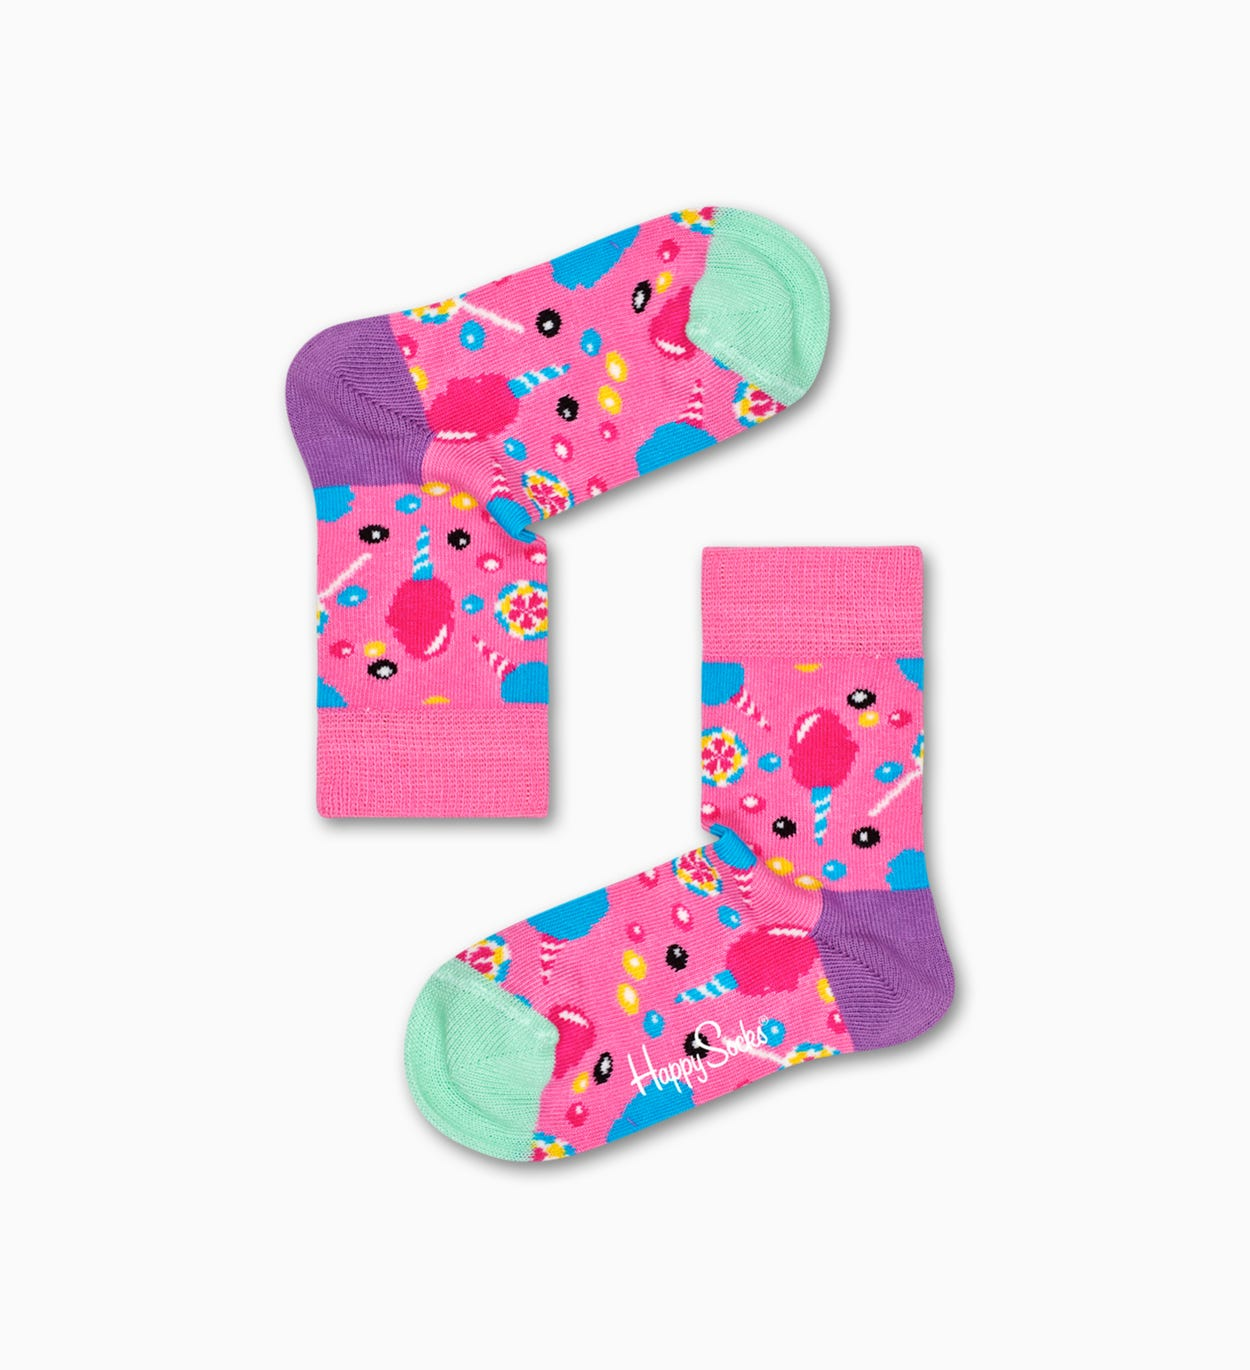 Cotton Candy Sock